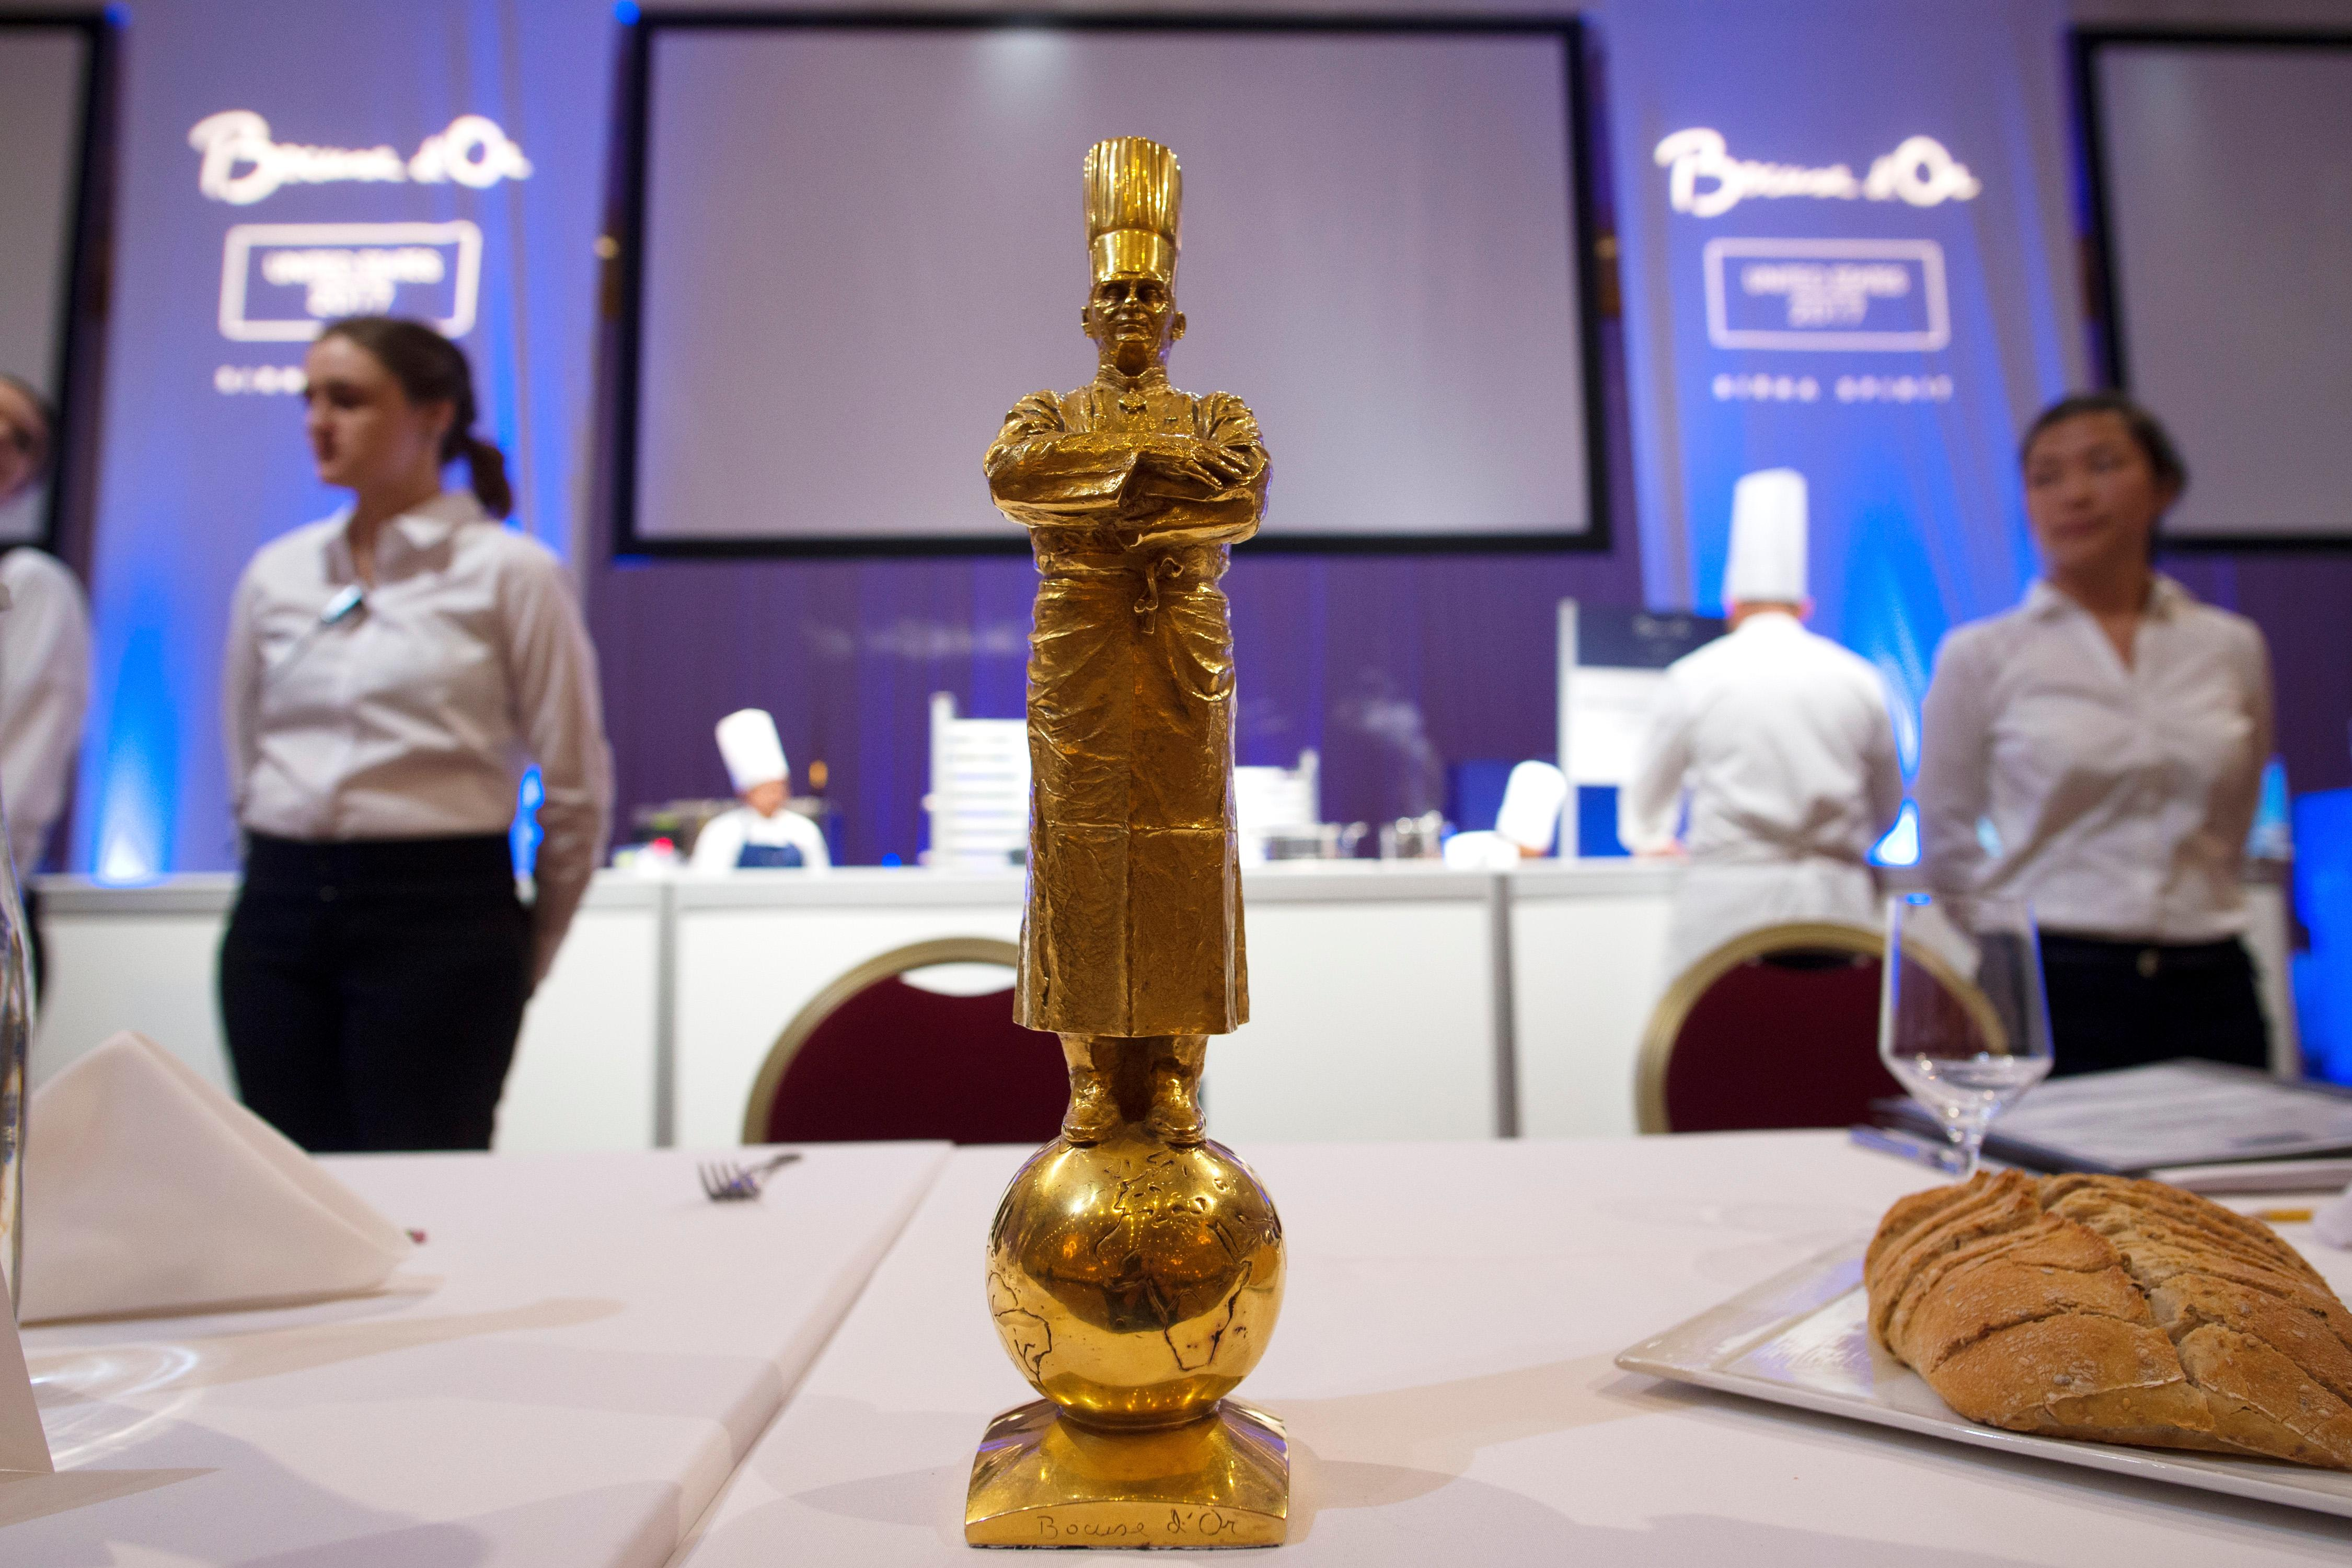 The Bocuse d'Or statue, won for the first time by a United States team in 2017, is seen during the Team USA National Selection for the 2019 Bocuse d'Or competition Thursday, November 9, 2017 at the Venetian. The biennial Bocuse d'Or, named for founder, legendary chef Paul Bocuse, is considered to be the culinary equivalent of the Olympics and is regarded as the most prestigious award for chefs in the world. CREDIT: Sam Morris/Las Vegas News Bureau